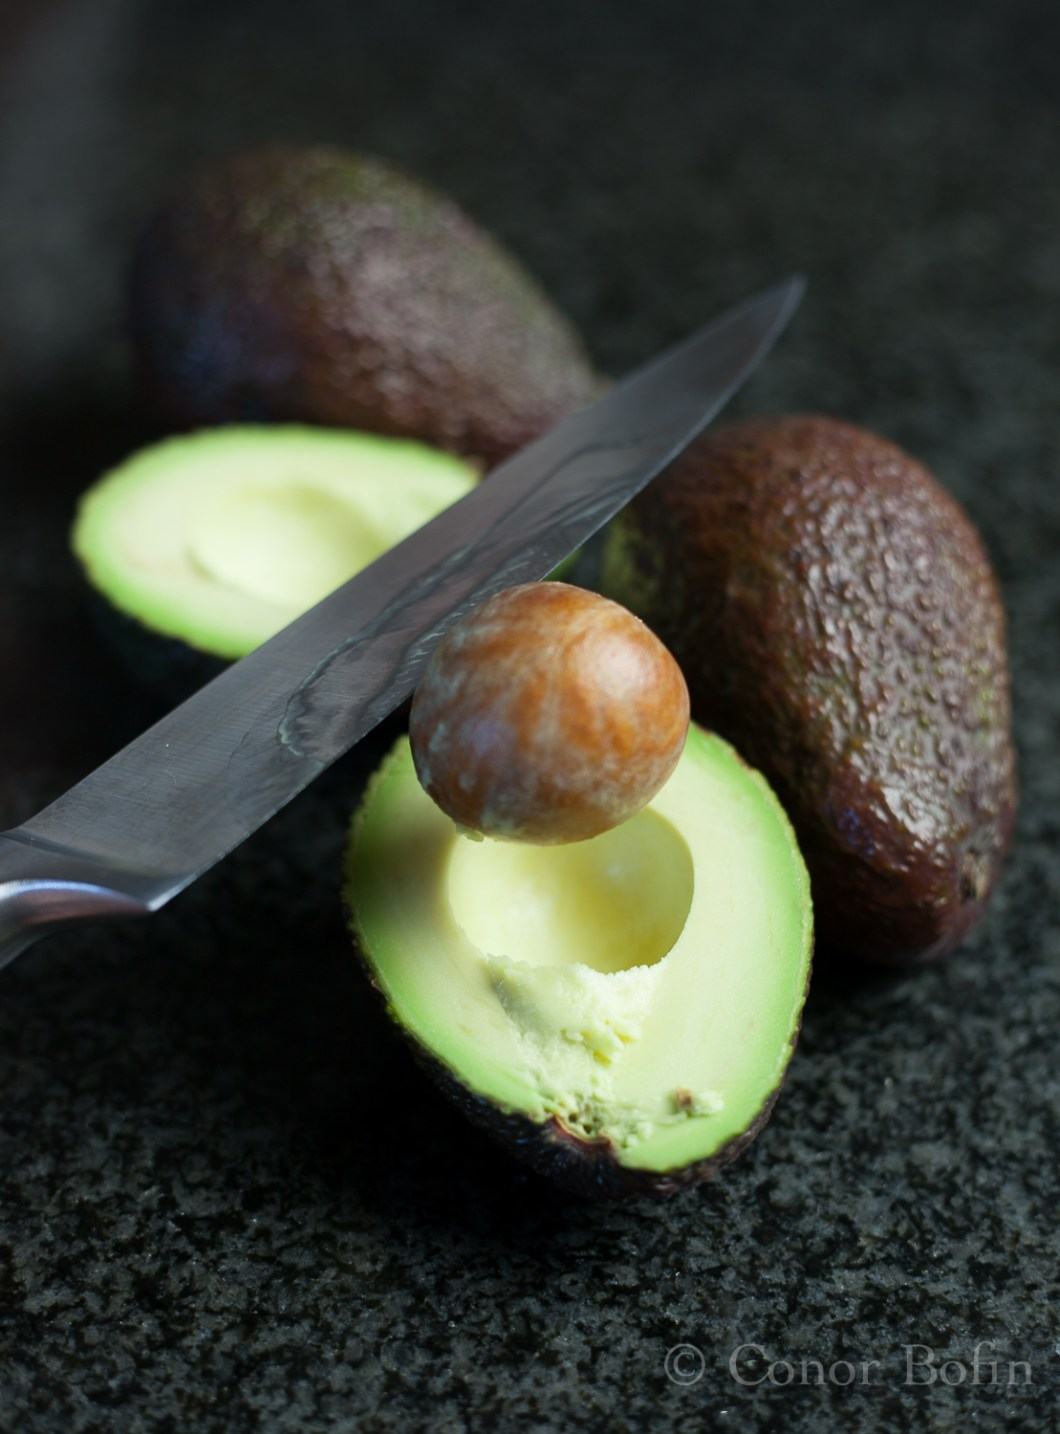 Extracting the nut from the avocado with a knife. Very satisfying.